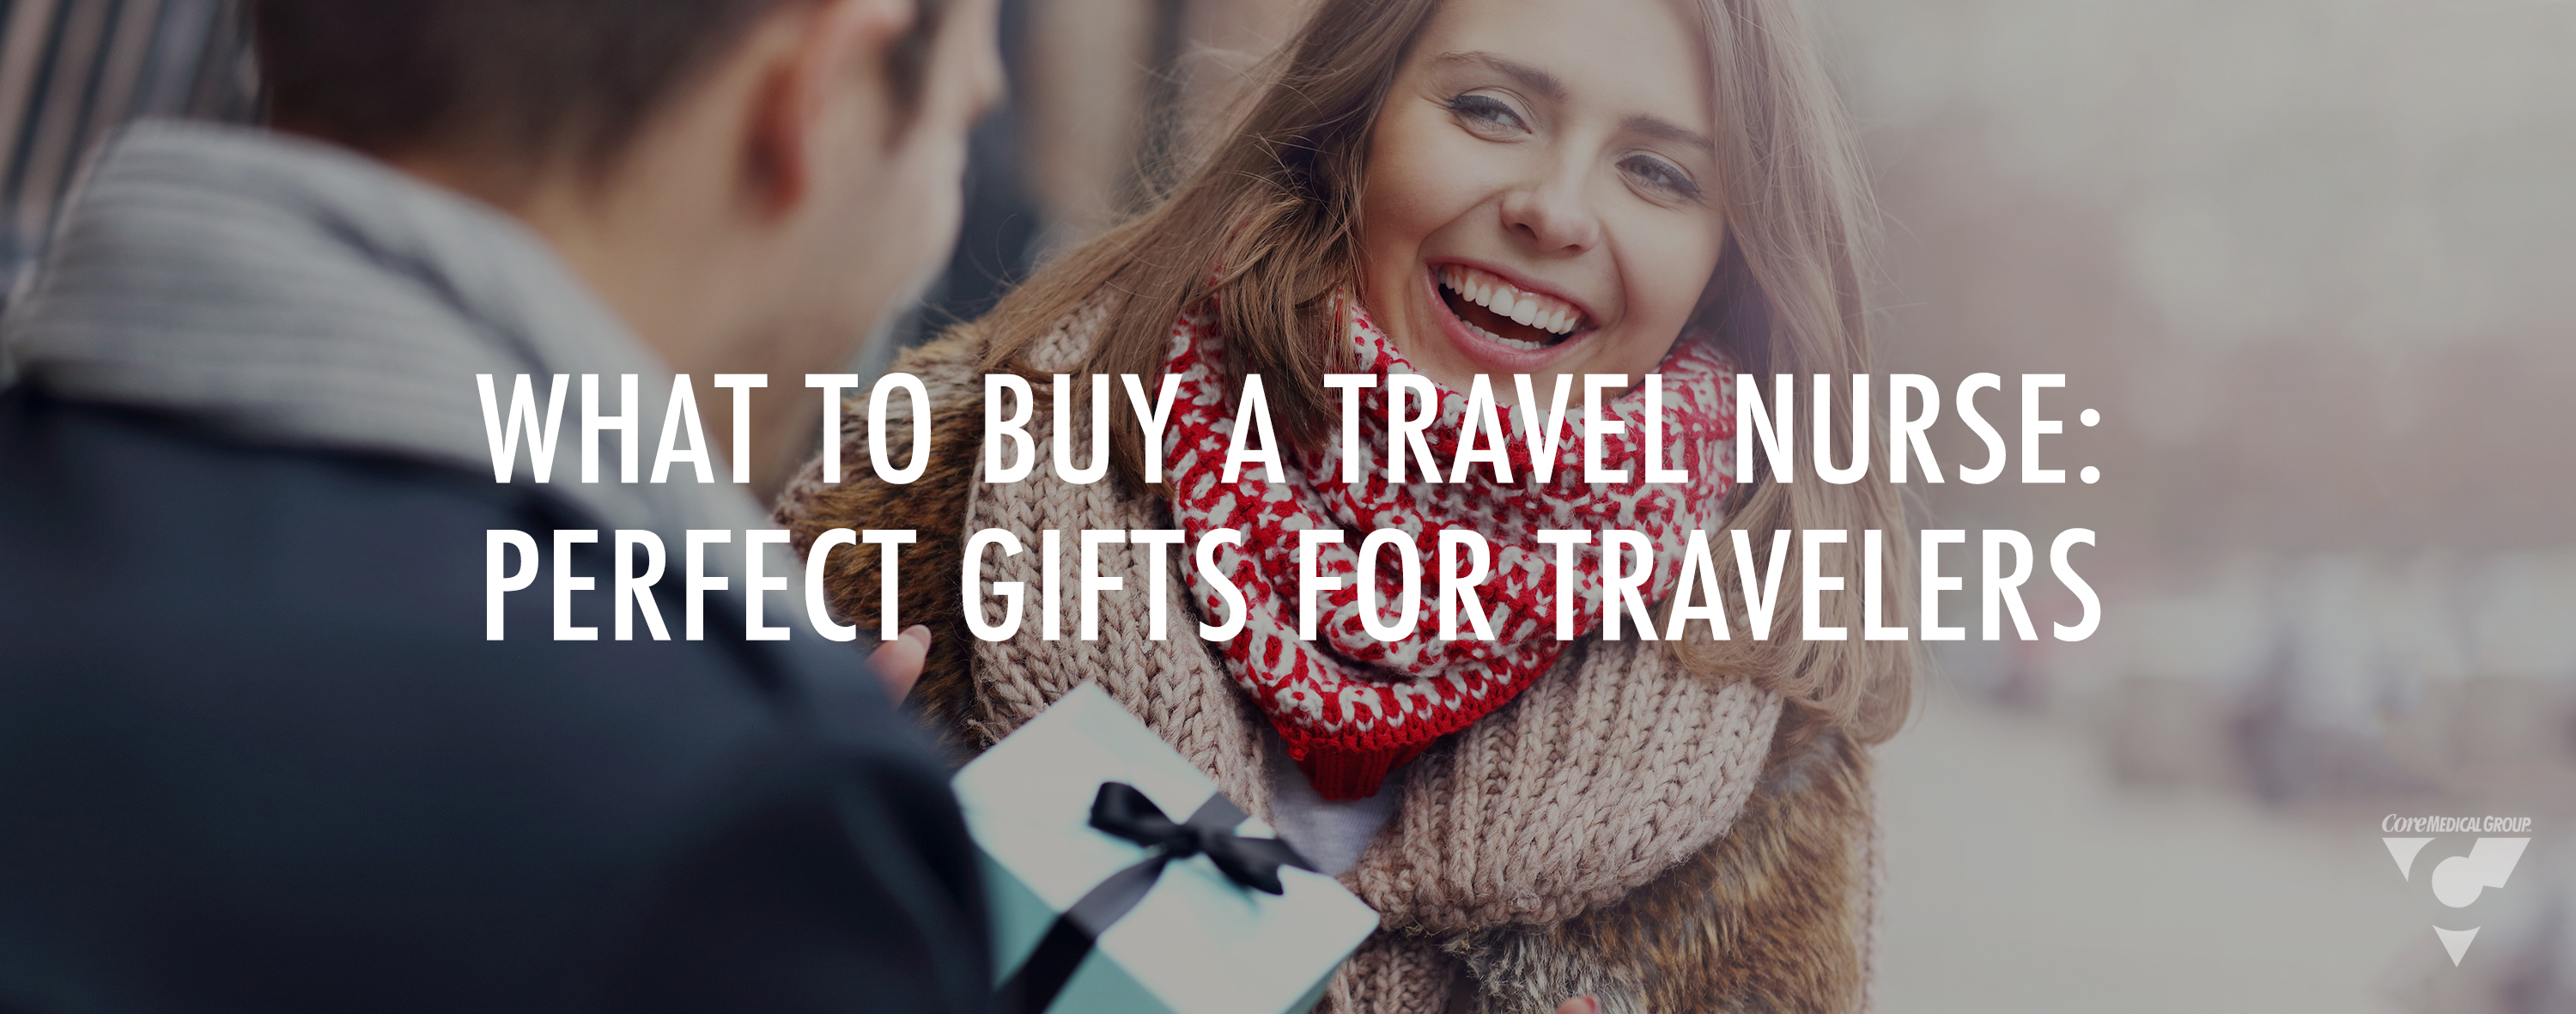 What to Buy a Travel Nurse as a gift perfect gifts for travelers